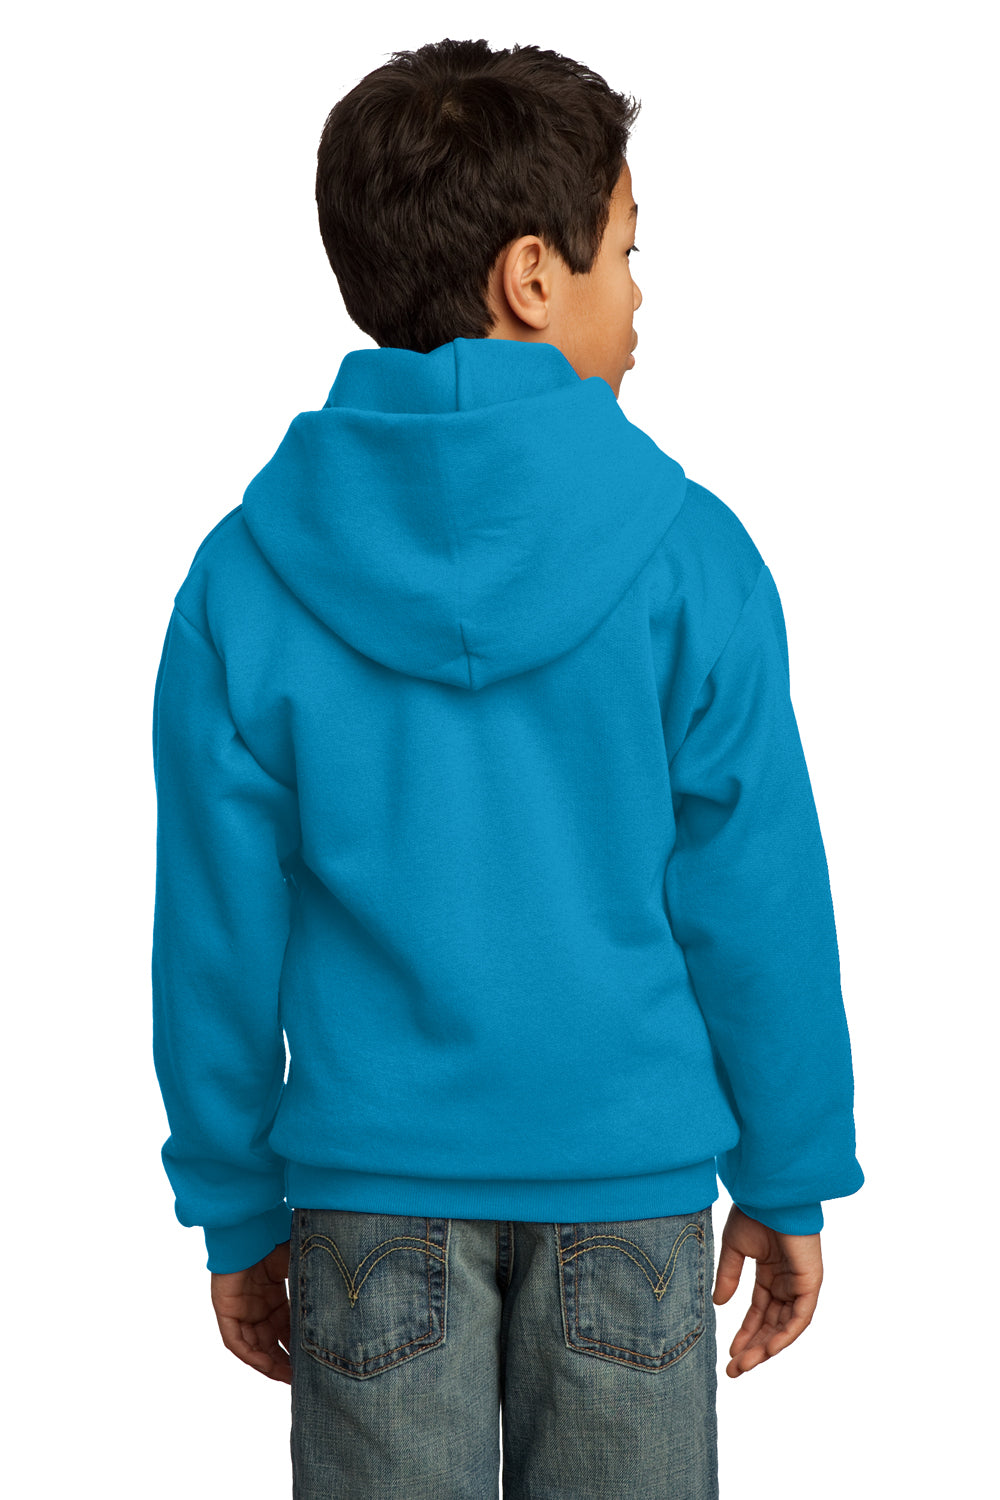 Port & Company PC90YH Youth Core Fleece Hooded Sweatshirt Hoodie Neon Blue Back